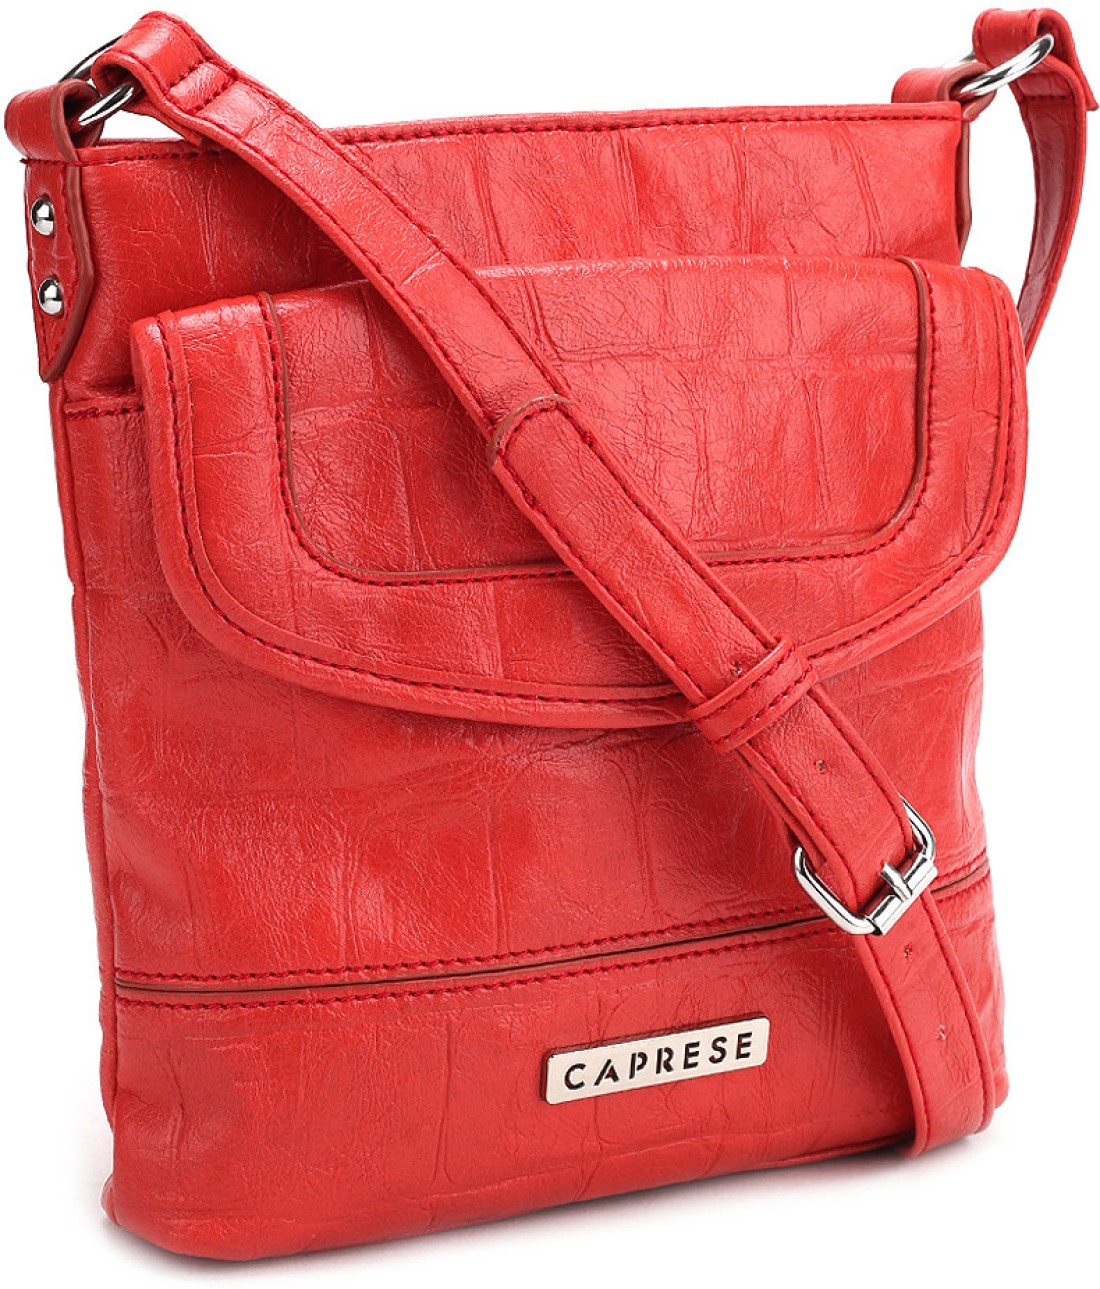 Gym Bag Flipkart: Caprese Women Casual Red PU Sling Bag Coral